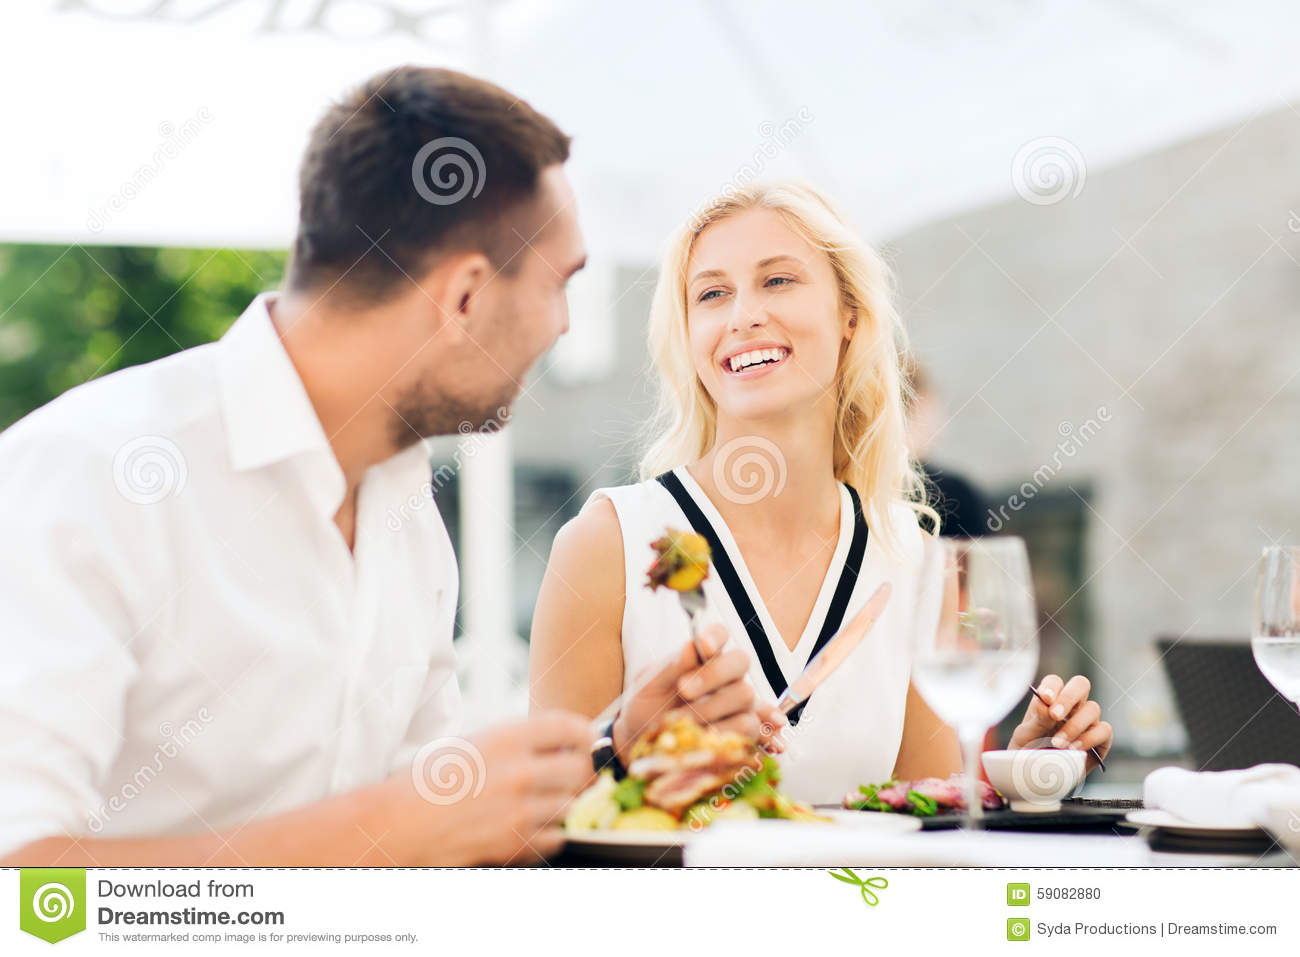 Salad lovers dating